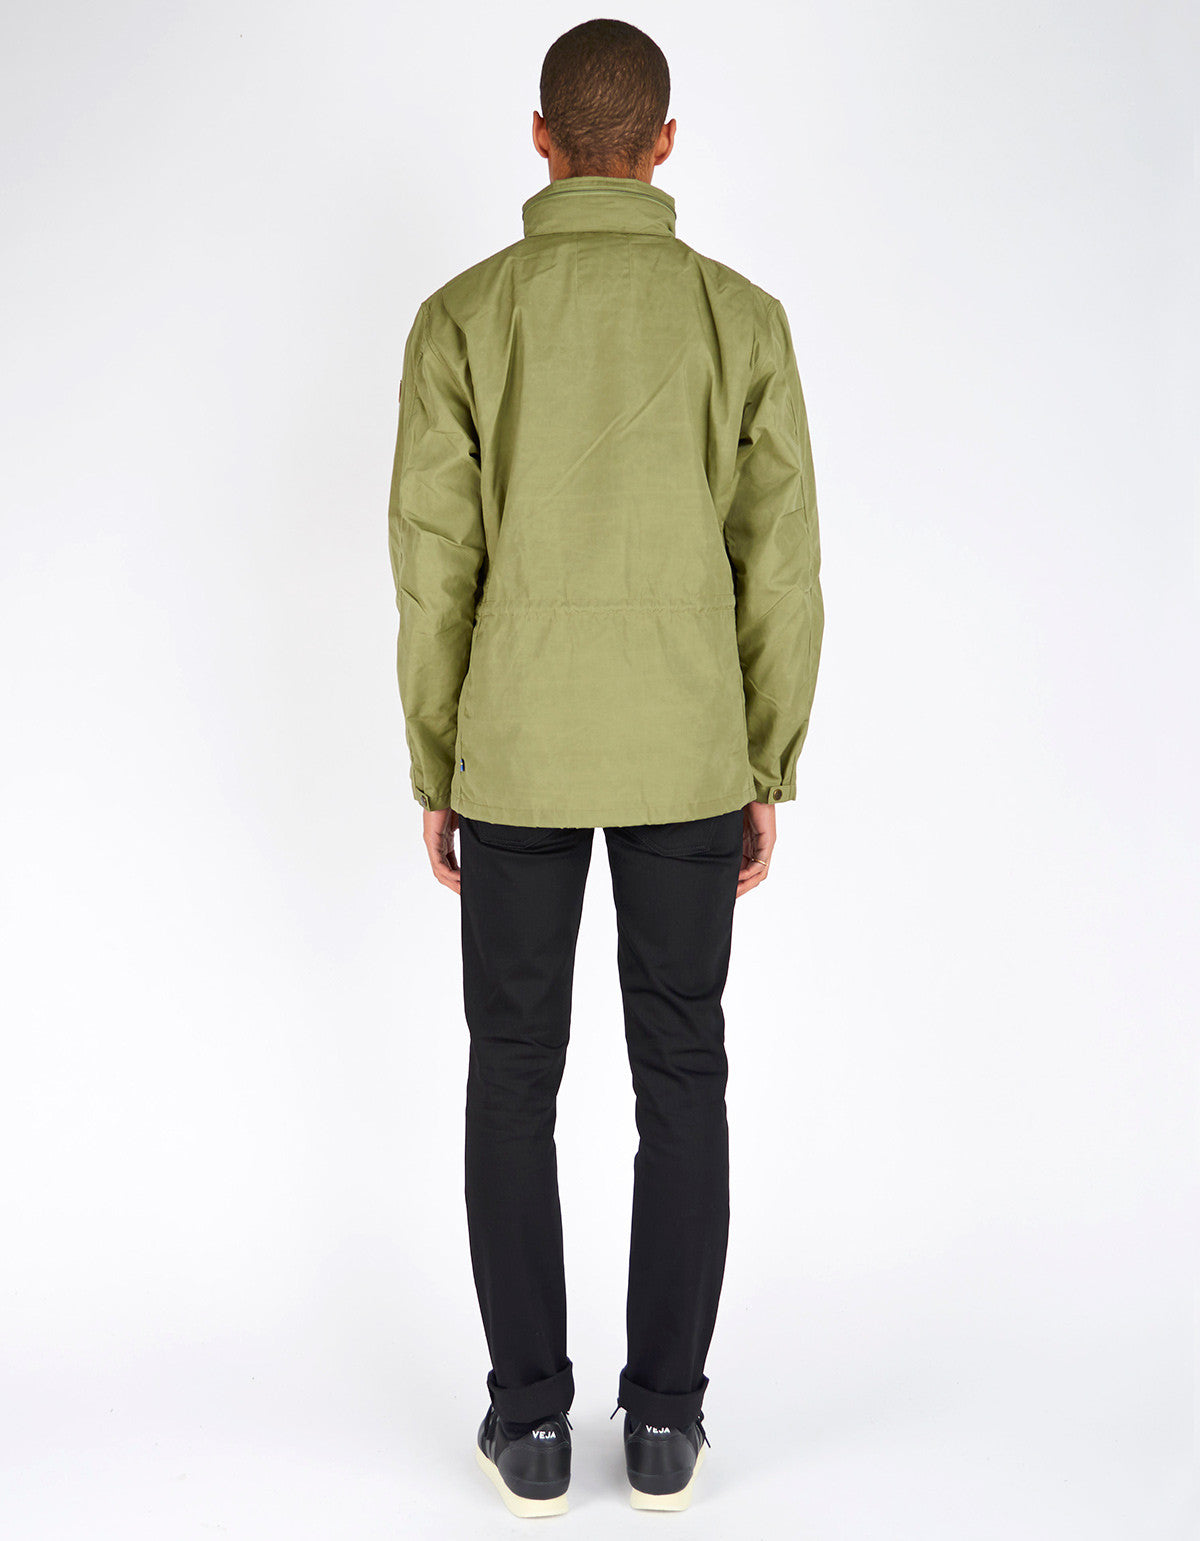 Fjallraven Raven Jacket Green - Still Life - 4